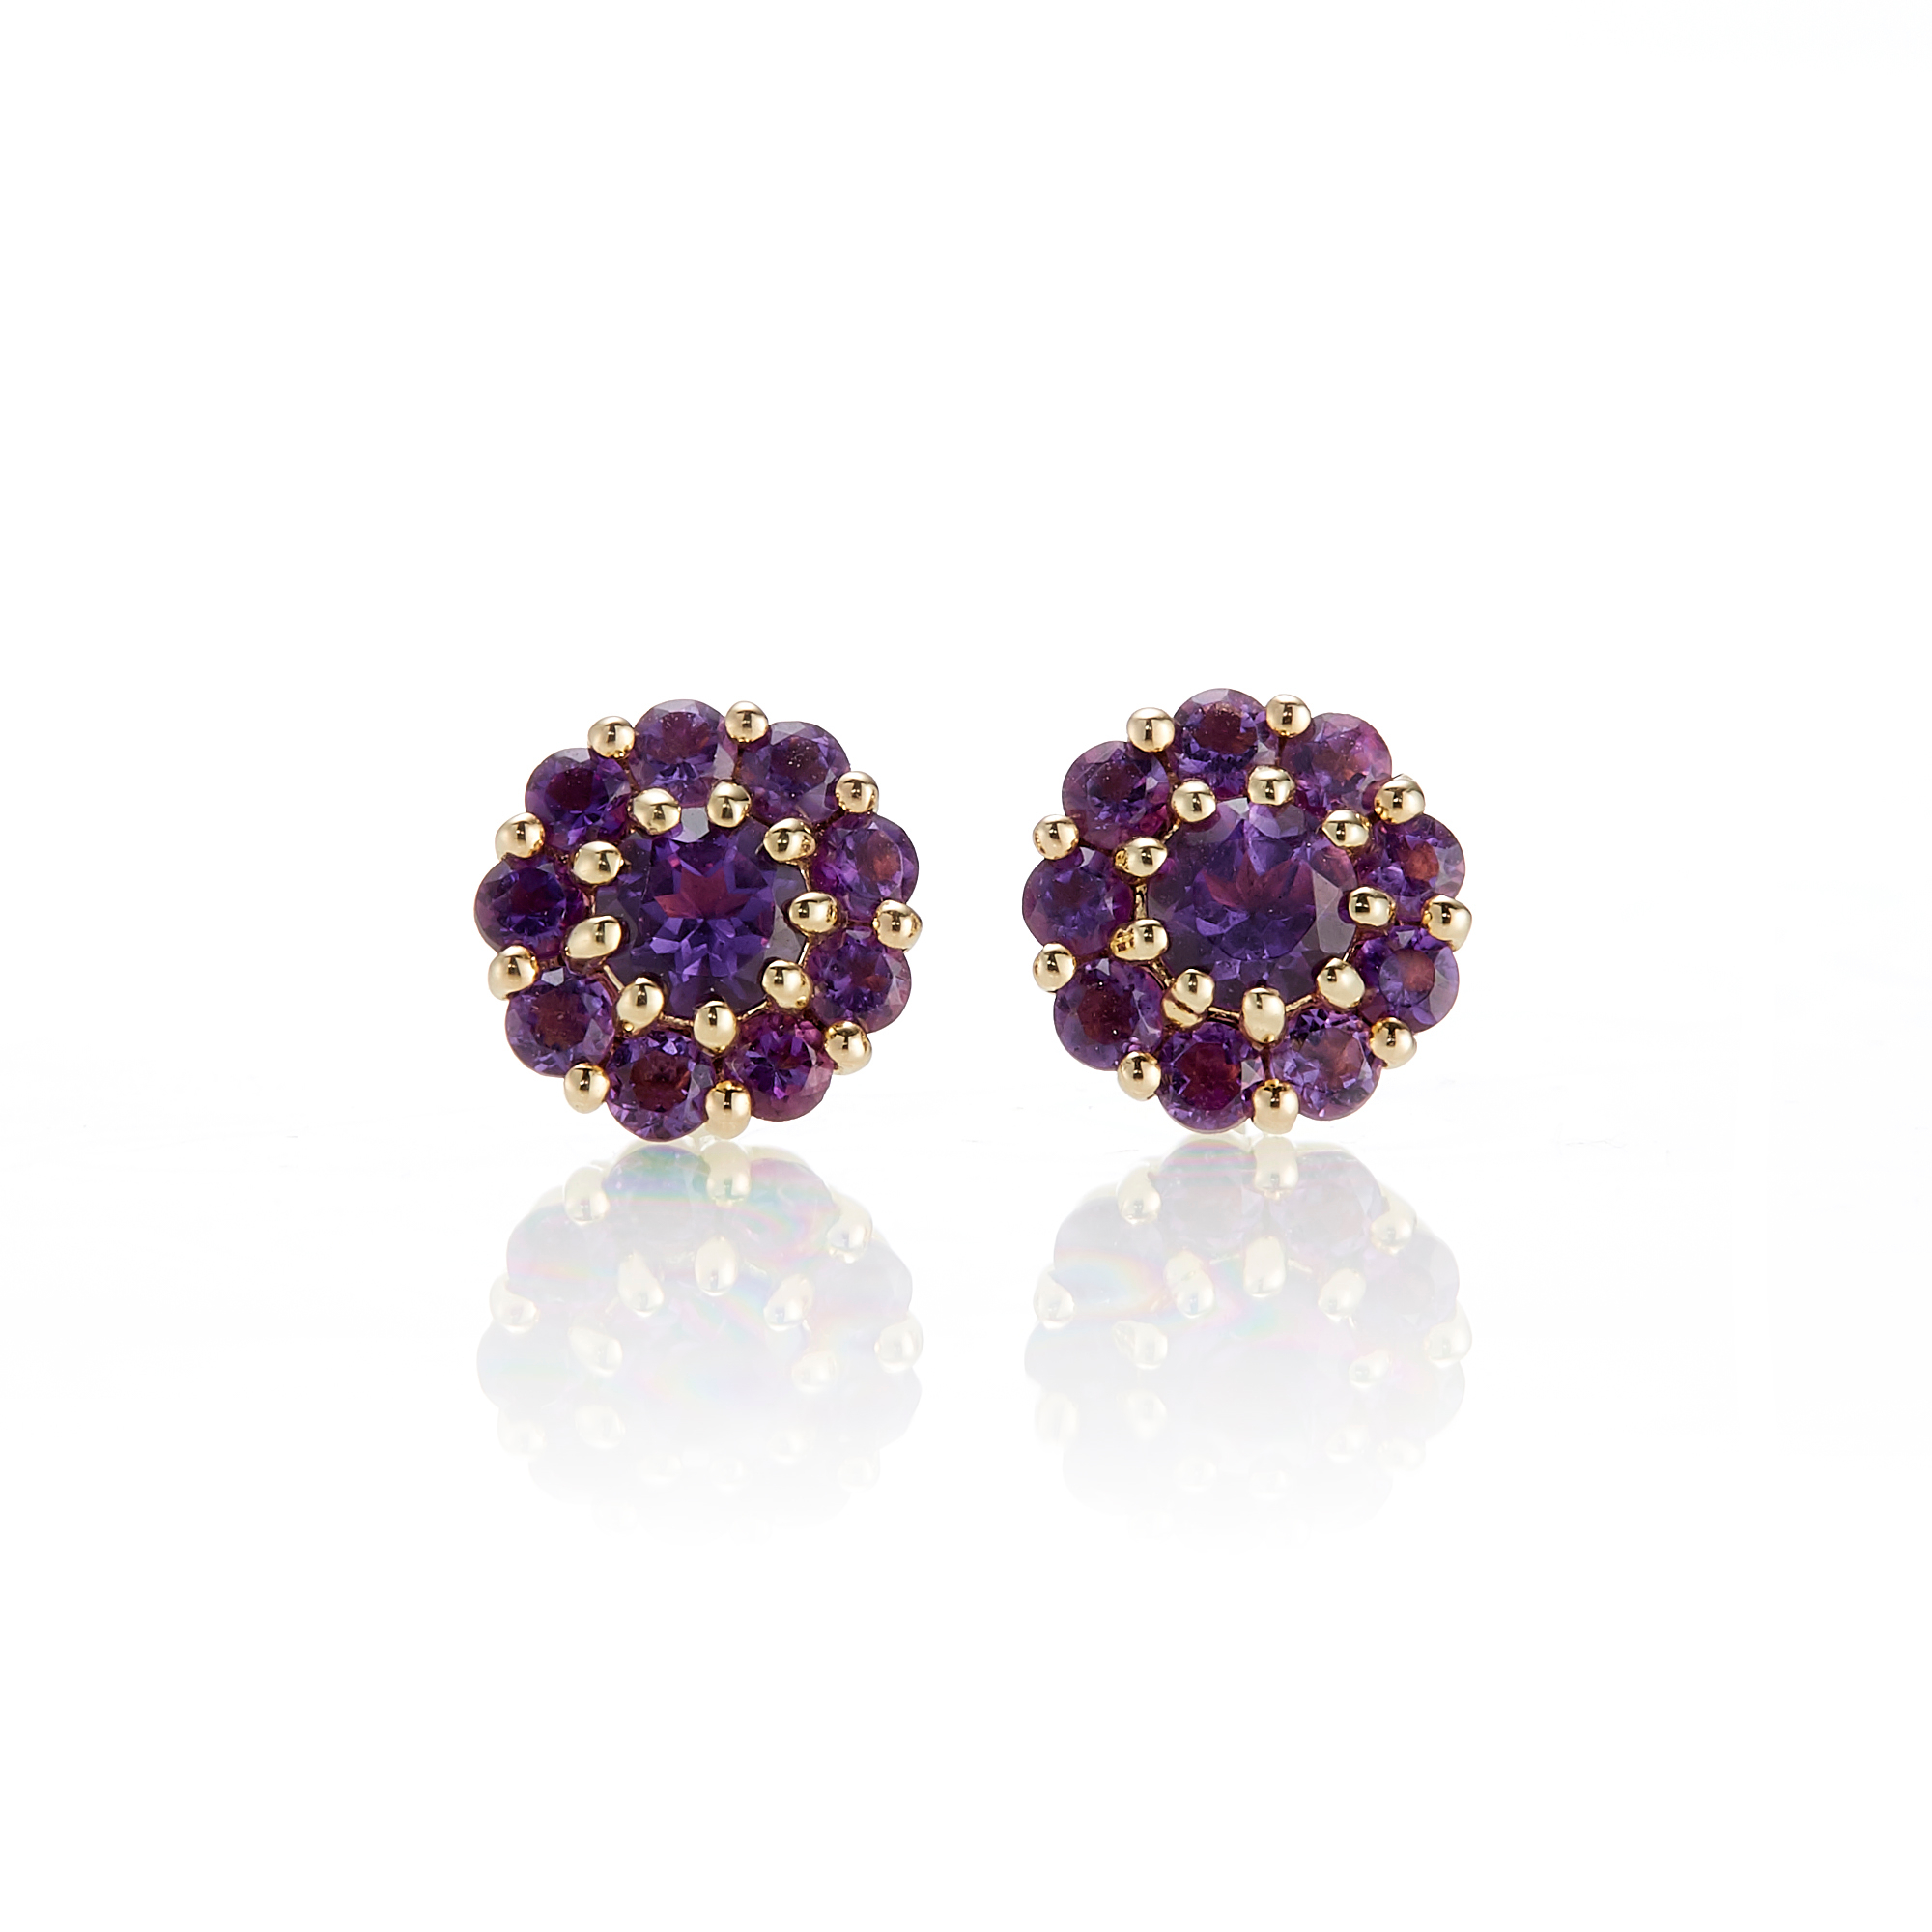 Gump's Petite Pavé Amethyst Floret Stud Earrings